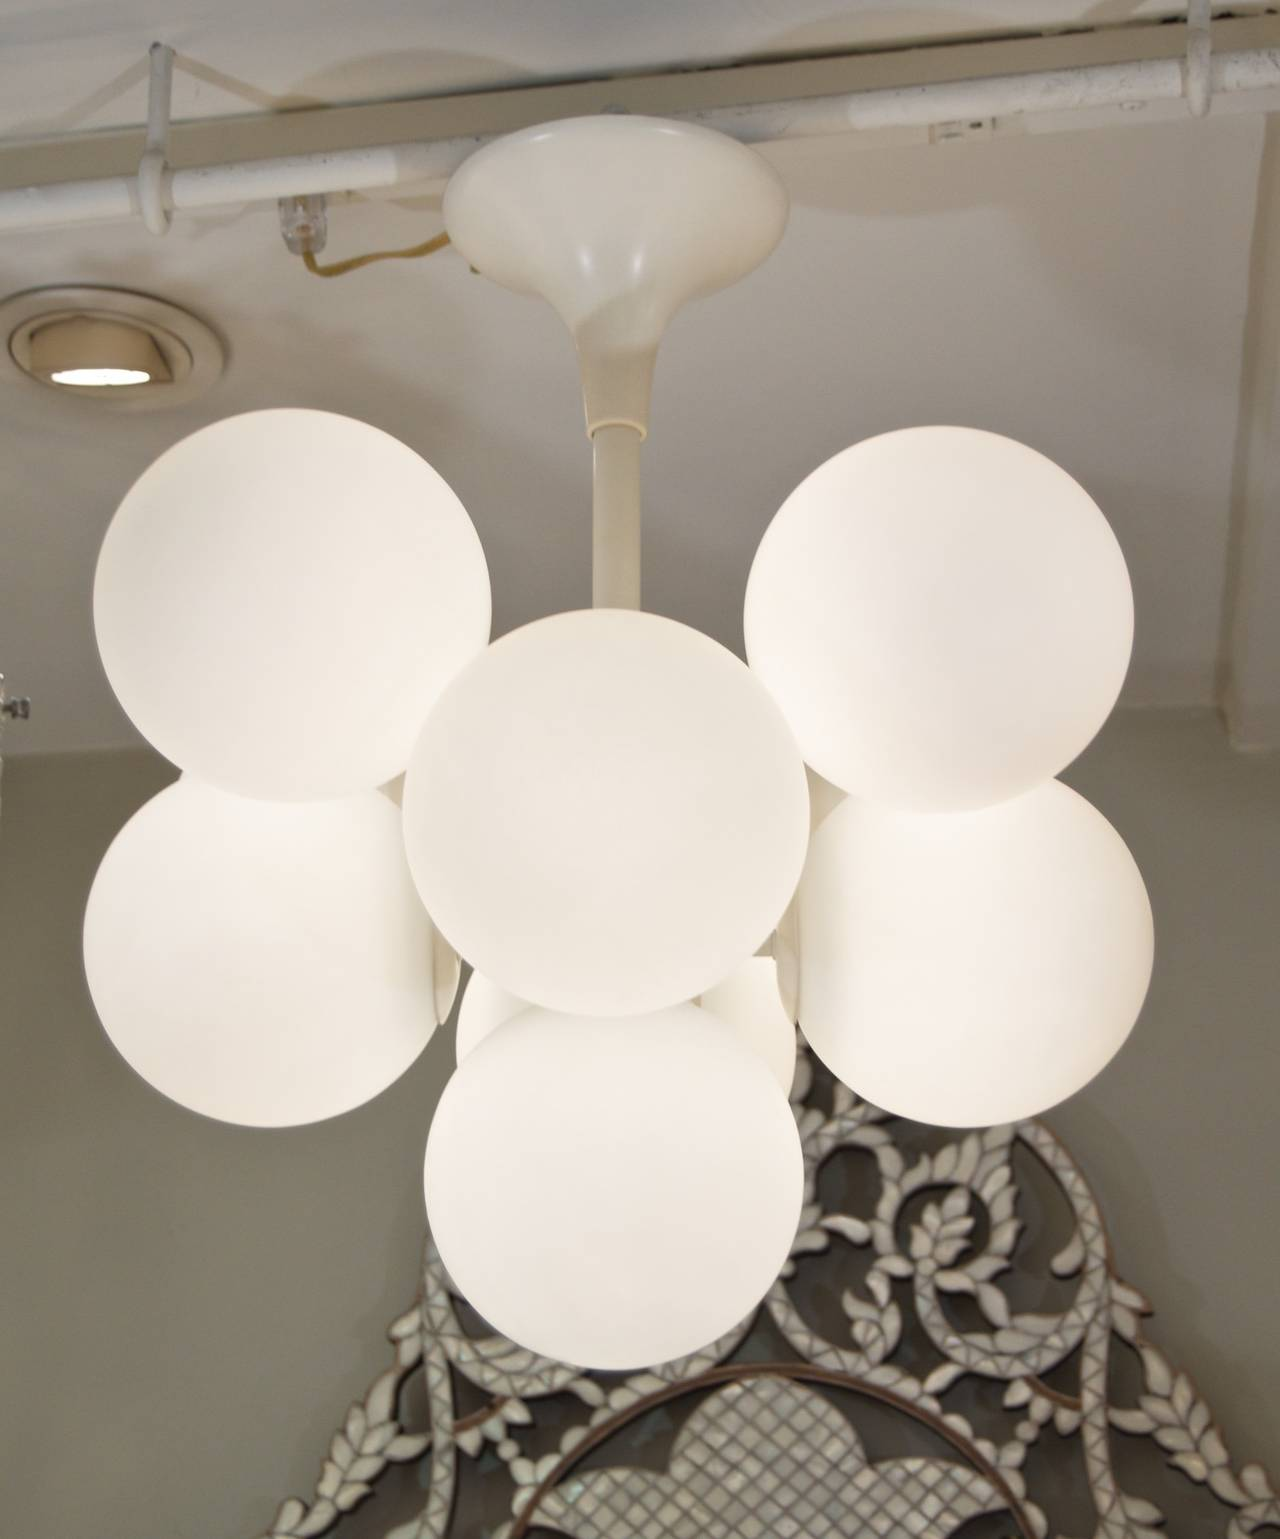 Temde Atomic Chandelier in White Enamel with Opal Globes at 1stdibs